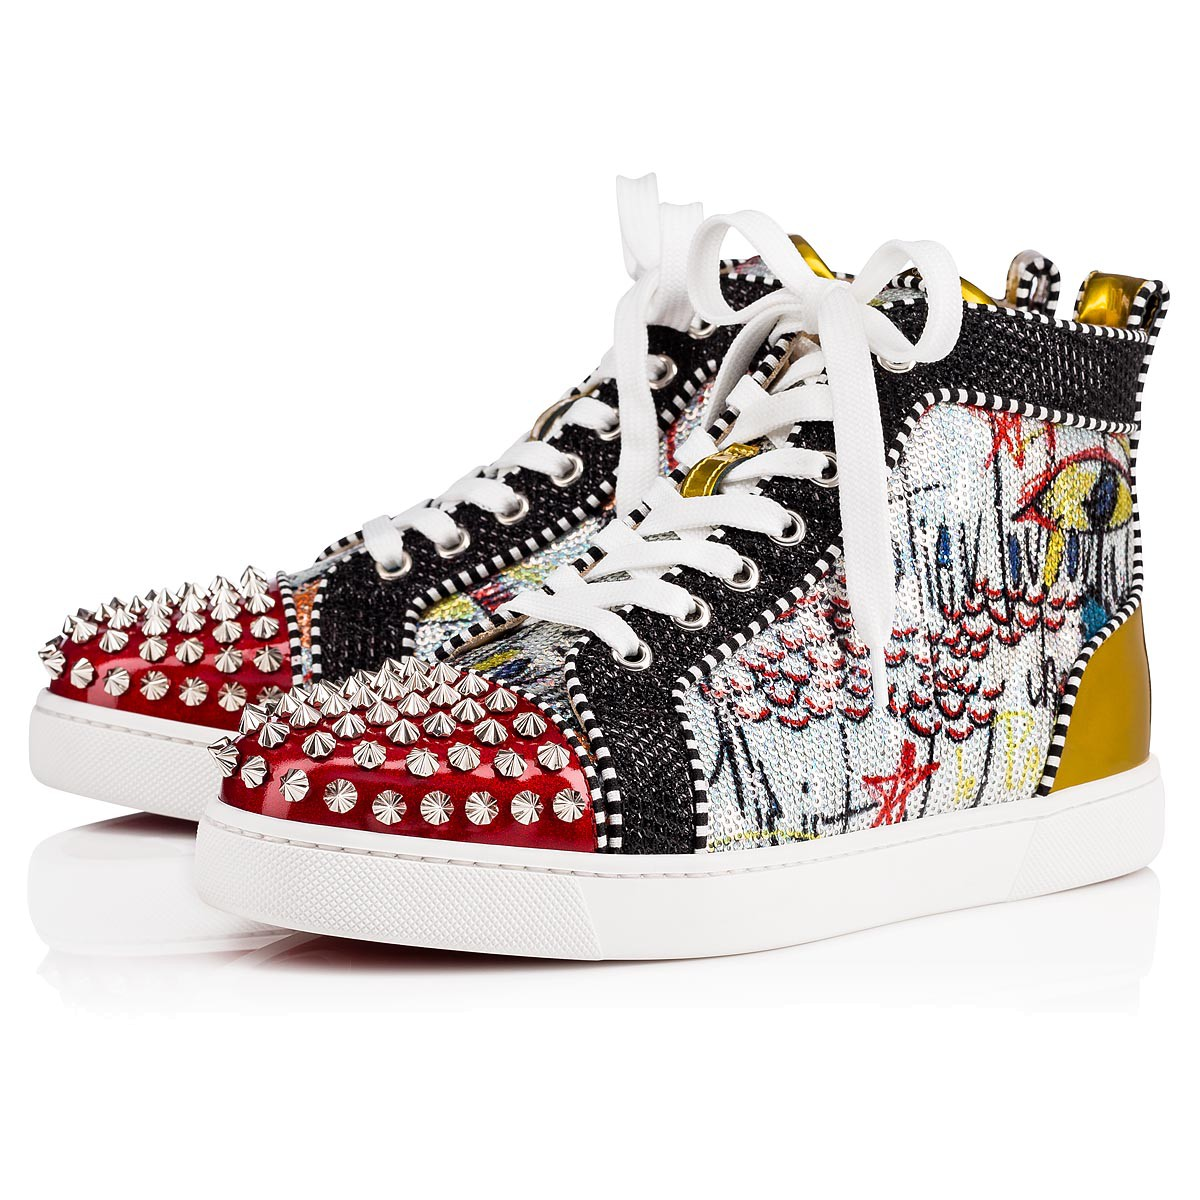 a4473aa61de8c red bottom shoes for men - Christian Louboutin High Top Silver Spikes Men  Shoes Lou Spikes Woman Flat - red bottoms for men - red bottom sneakers US$  280- ...